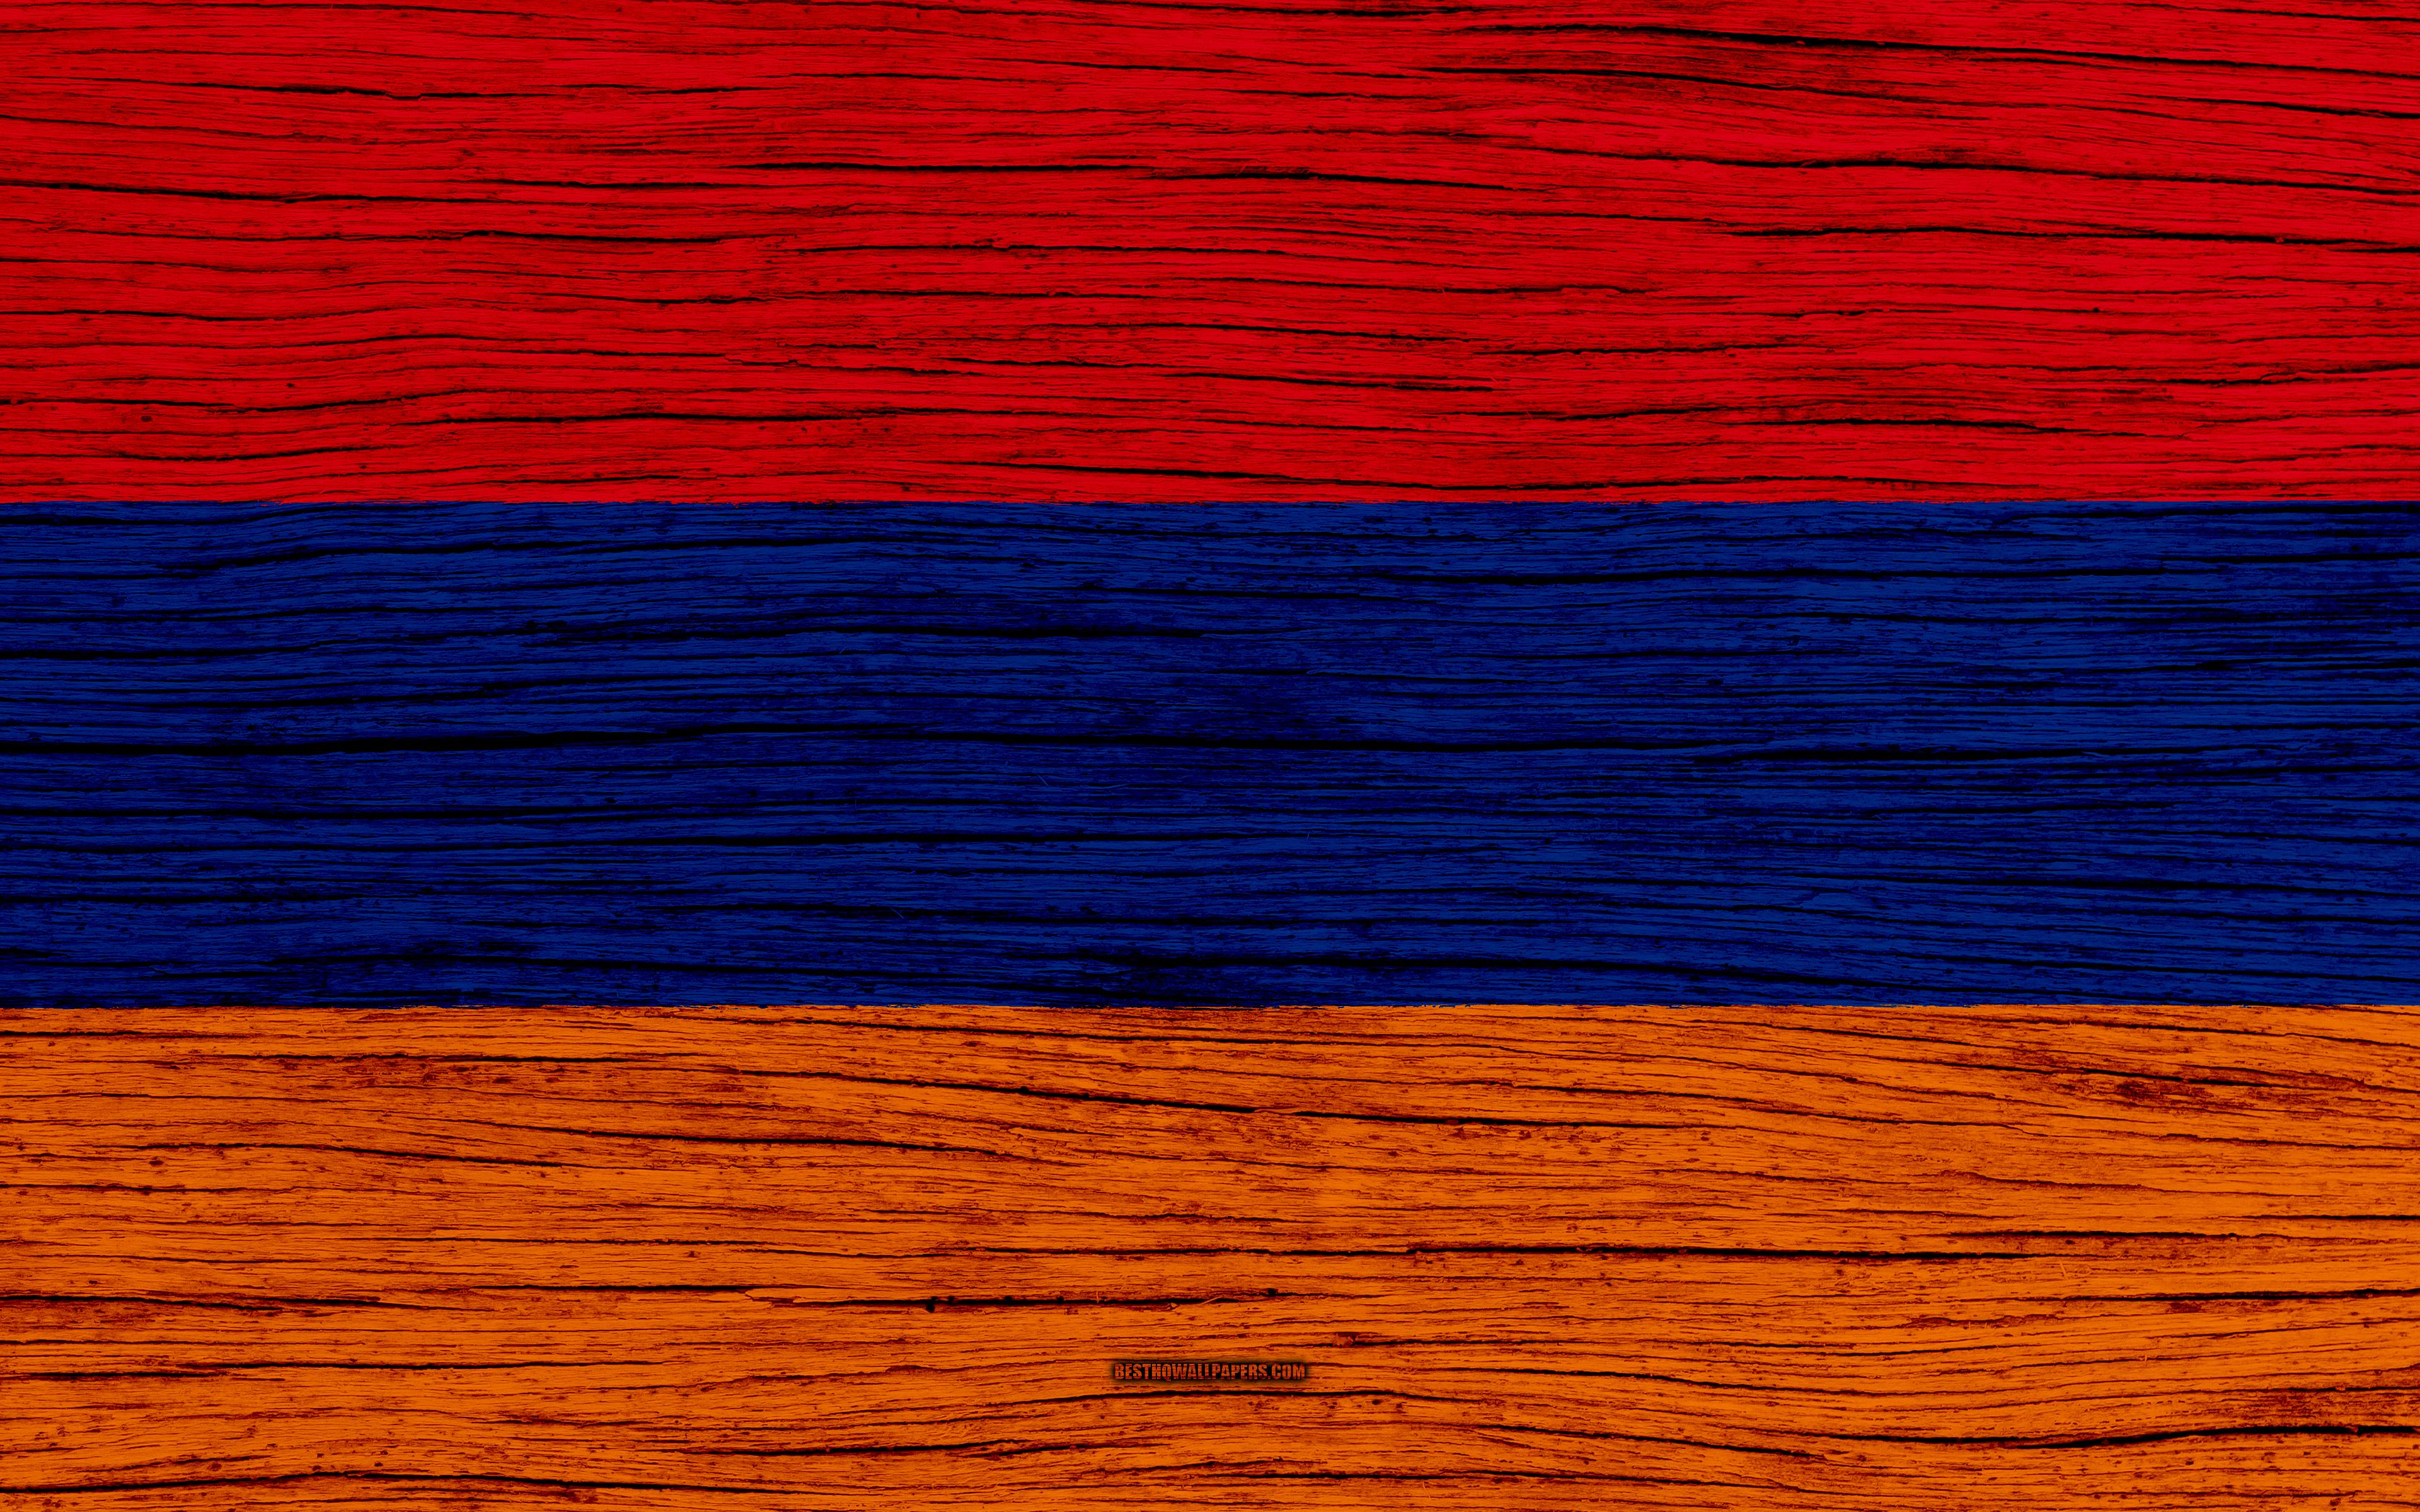 Download wallpapers Flag of Armenia, 4k, Asia, wooden texture